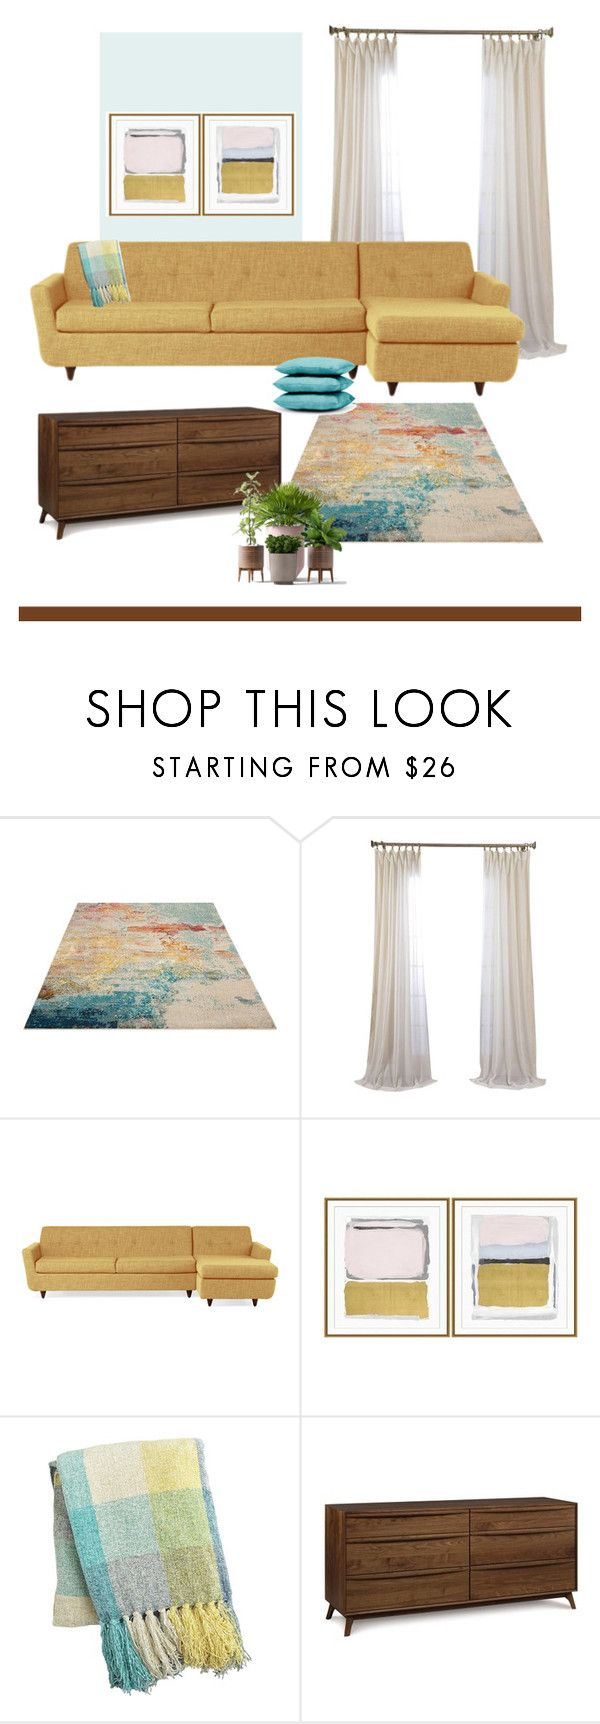 """Living Space"" by patricia-dimmick on Polyvore featuring interior, interiors, interior design, home, home decor, interior decorating, Joybird, Williams-Sonoma, Pier 1 Imports and Brown Jordan"